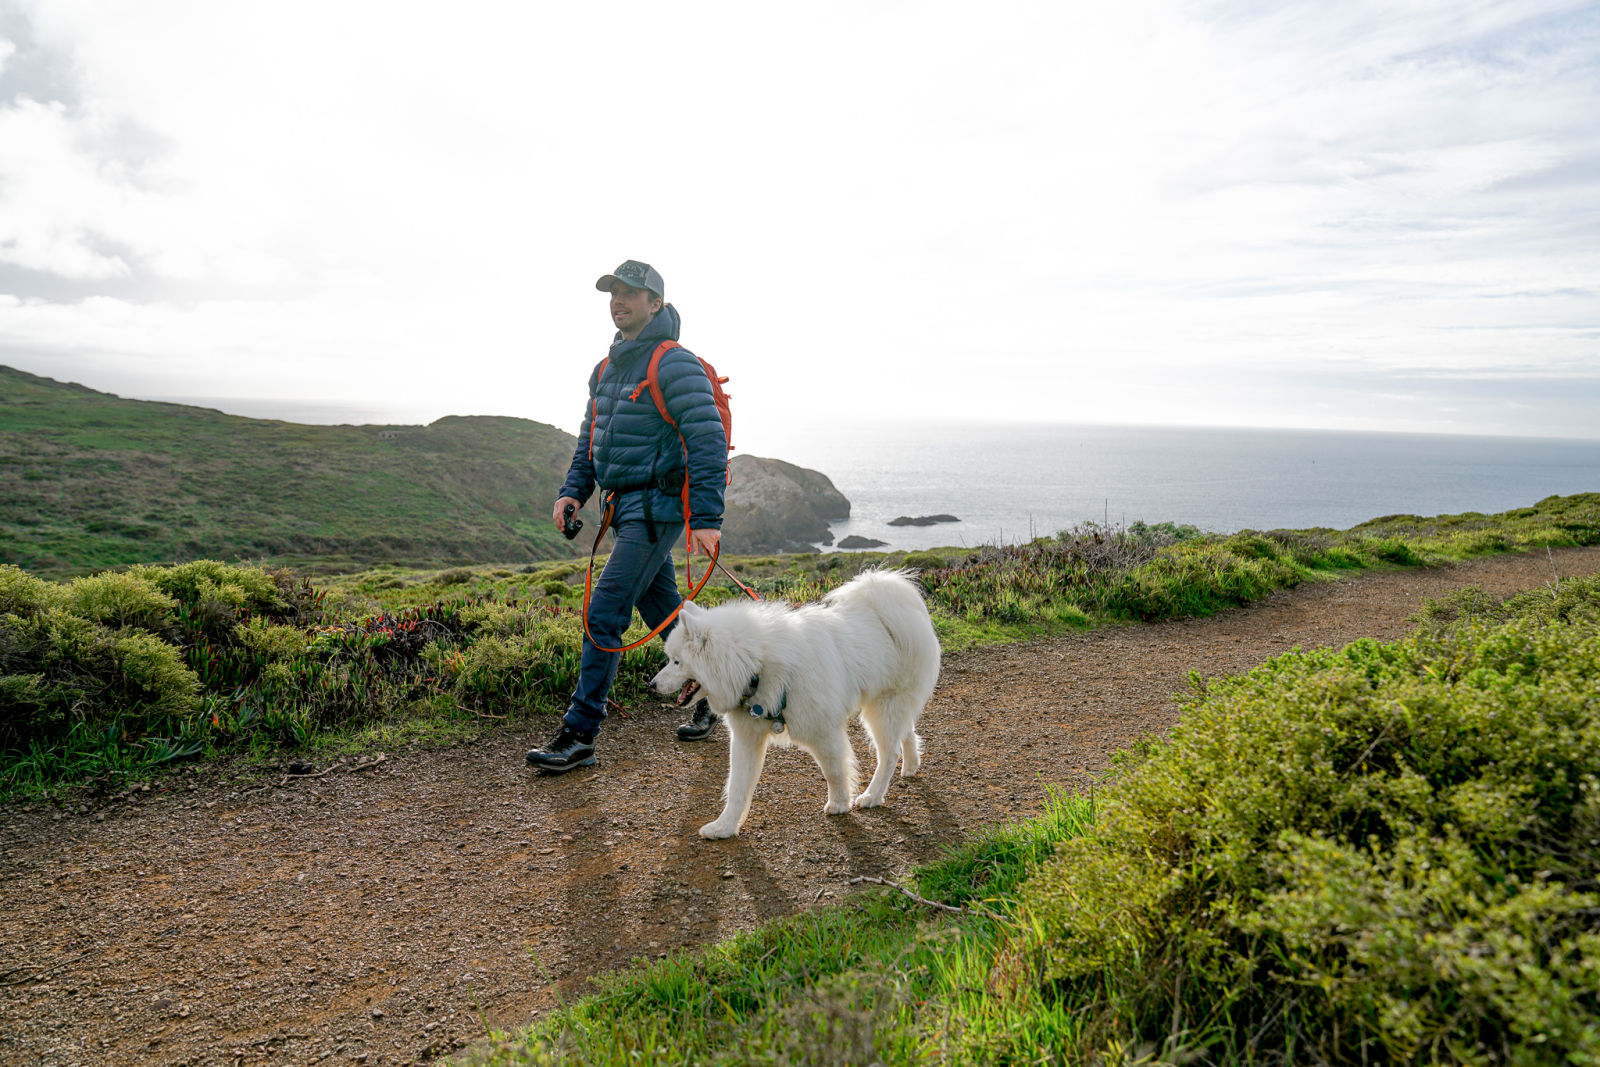 Out and about in the Marin Headlands, San Francisco - Charles Post with his dog and the new SWAROVSKI OPTIK CL Pocket binoculars